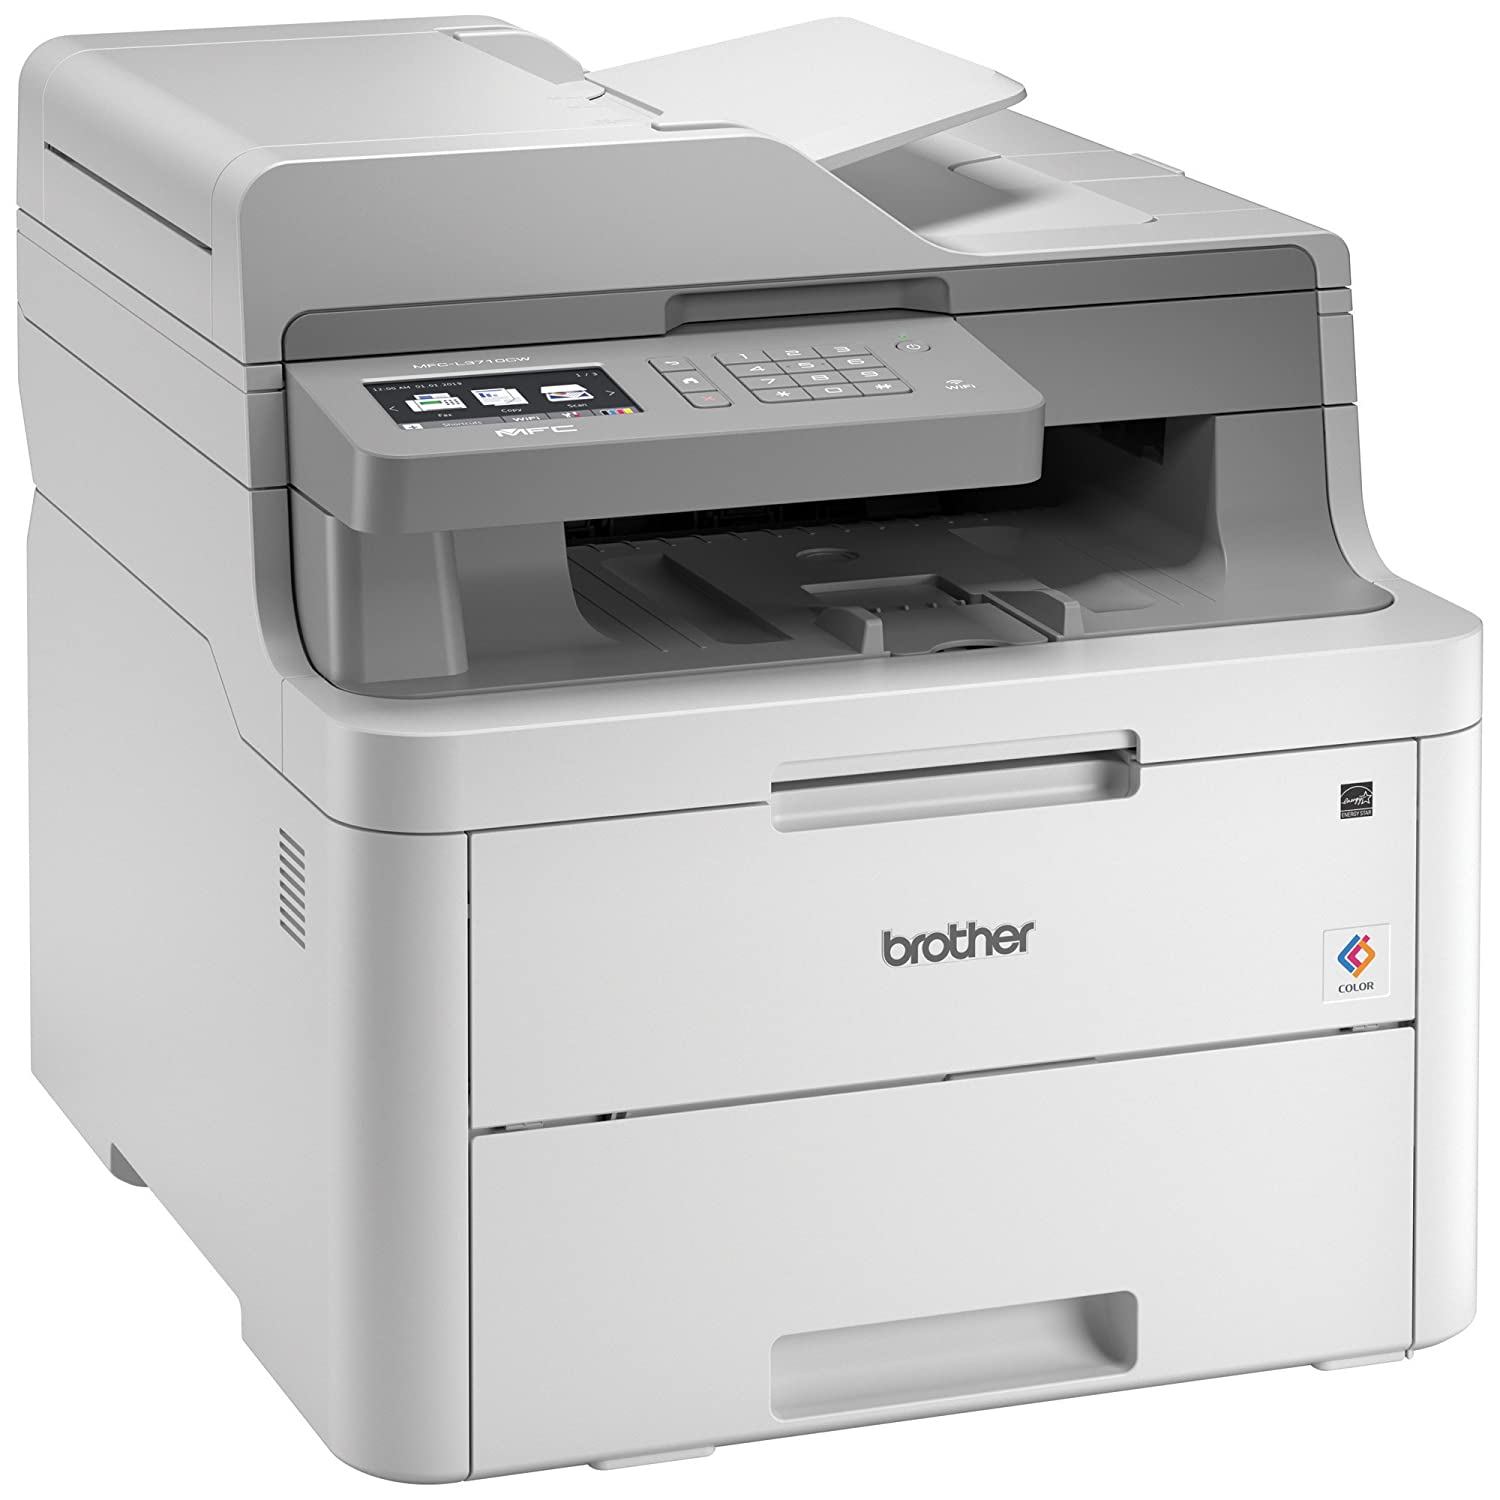 BROTHER MFC-9130CW SCANNER DRIVERS PC